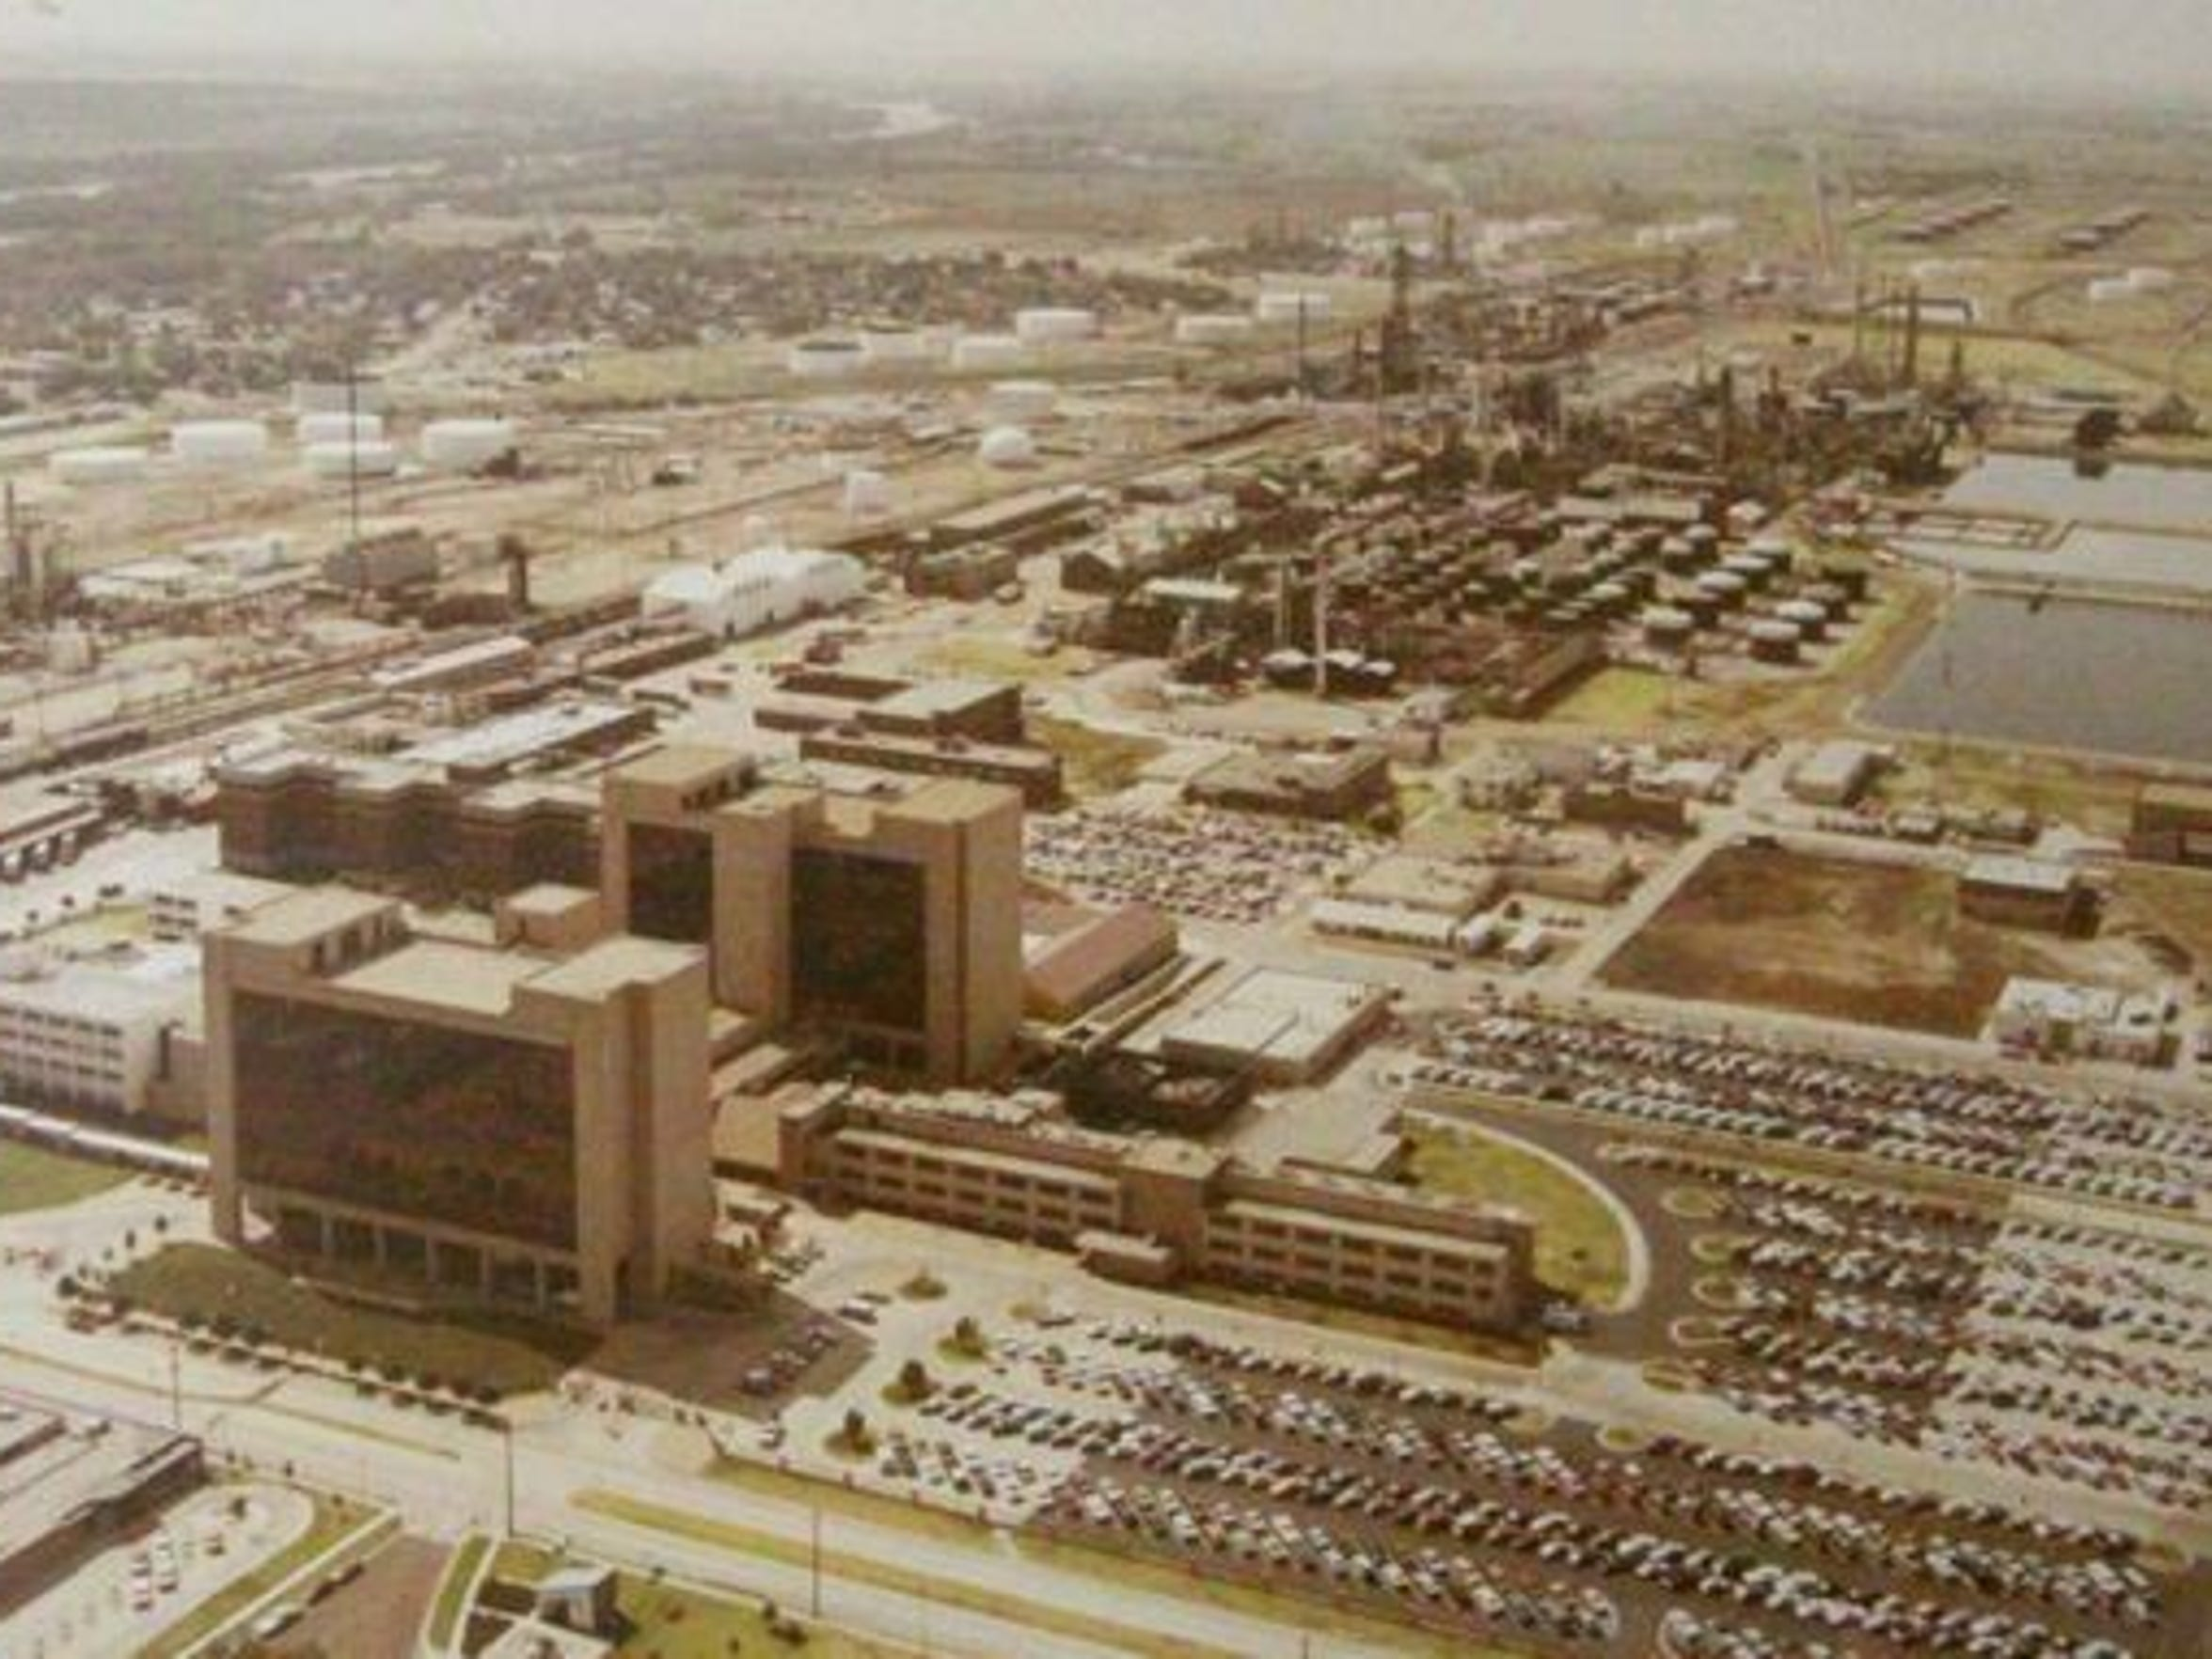 ConocoPhillips' Ponca City, Oklahoma plant is seen during its heyday in 1984.